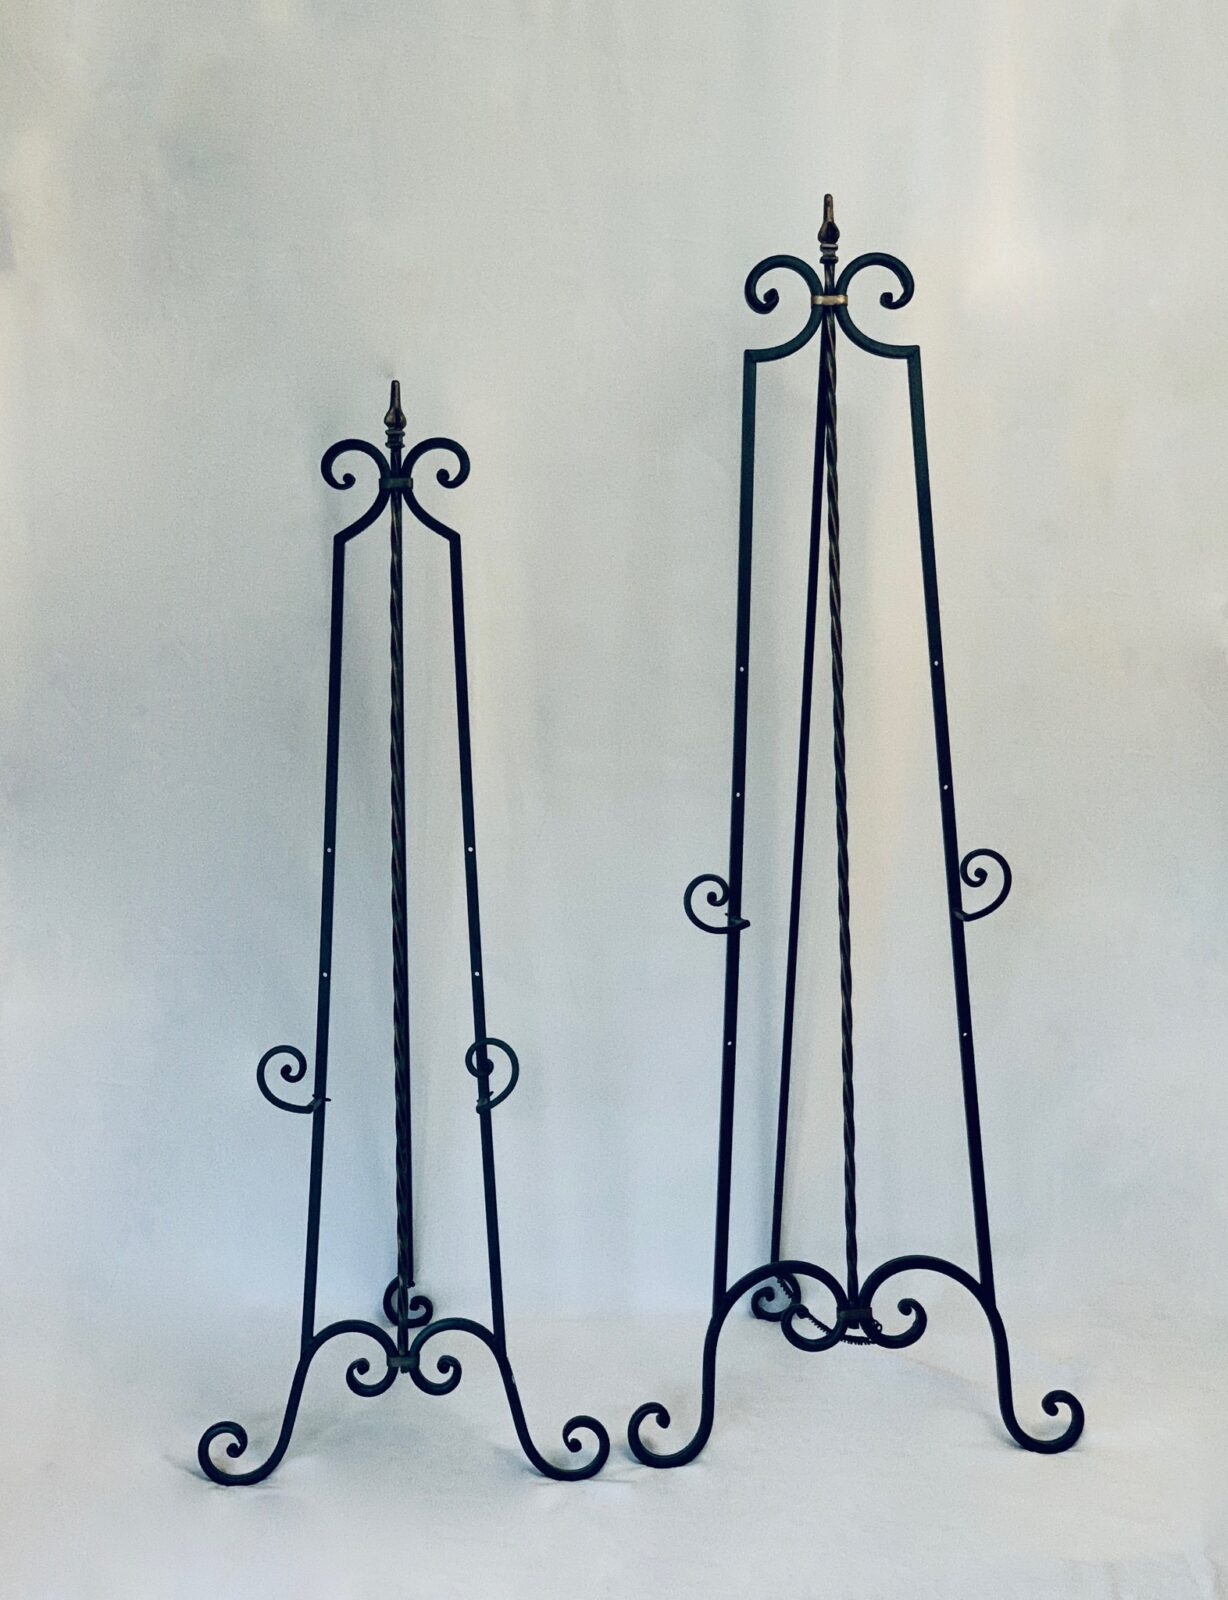 """4.5' Iron Easel - Black, 53"""" tall x 20"""" wide (12"""" sign holder), Qty:1, $10 - 6' Iron Easel - Black, 72"""" tall x 22"""" wide (15"""" sign holder), $12"""